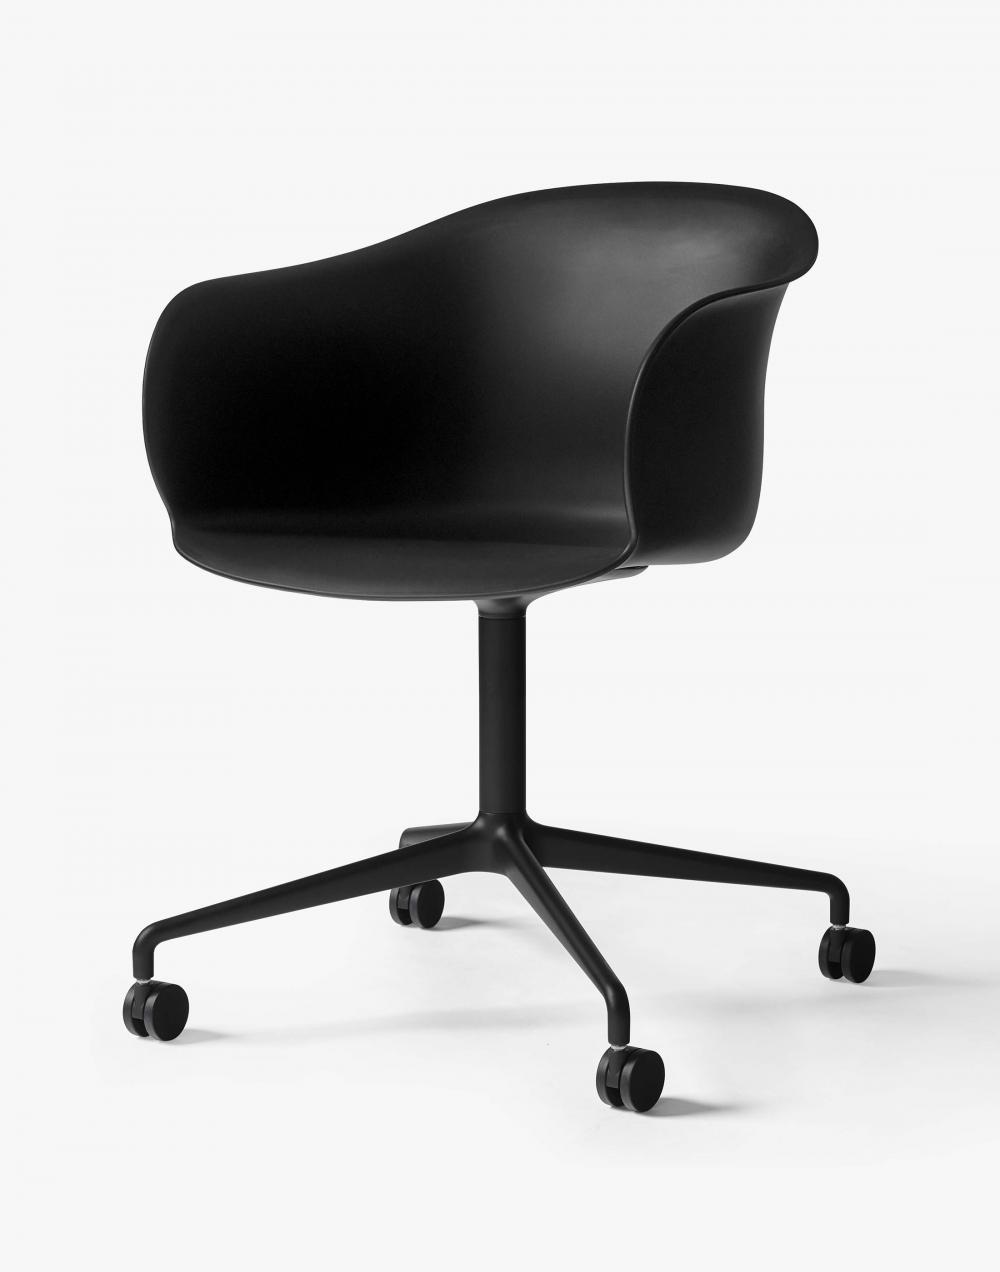 Elefy chair - swivel base with castors